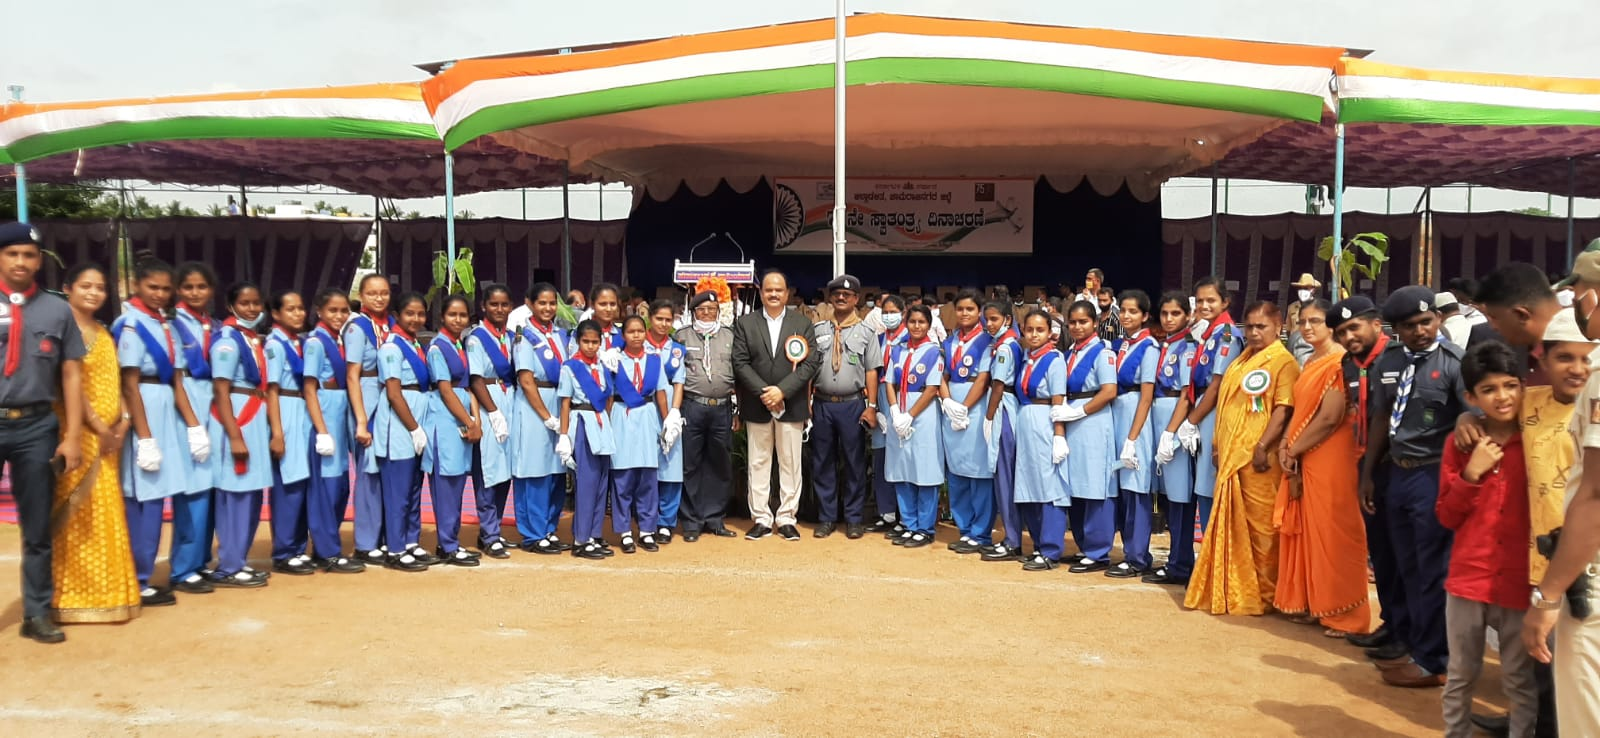 On the occasion of 75th Independence Day, The Bharath Scouts and Guides Unit, Chamarajanagar organized a parade at the Ambedkar Stadium,  Chamarajanagar on 15.08.2021. The following Rangers attended the parade and secured 3rd prize.